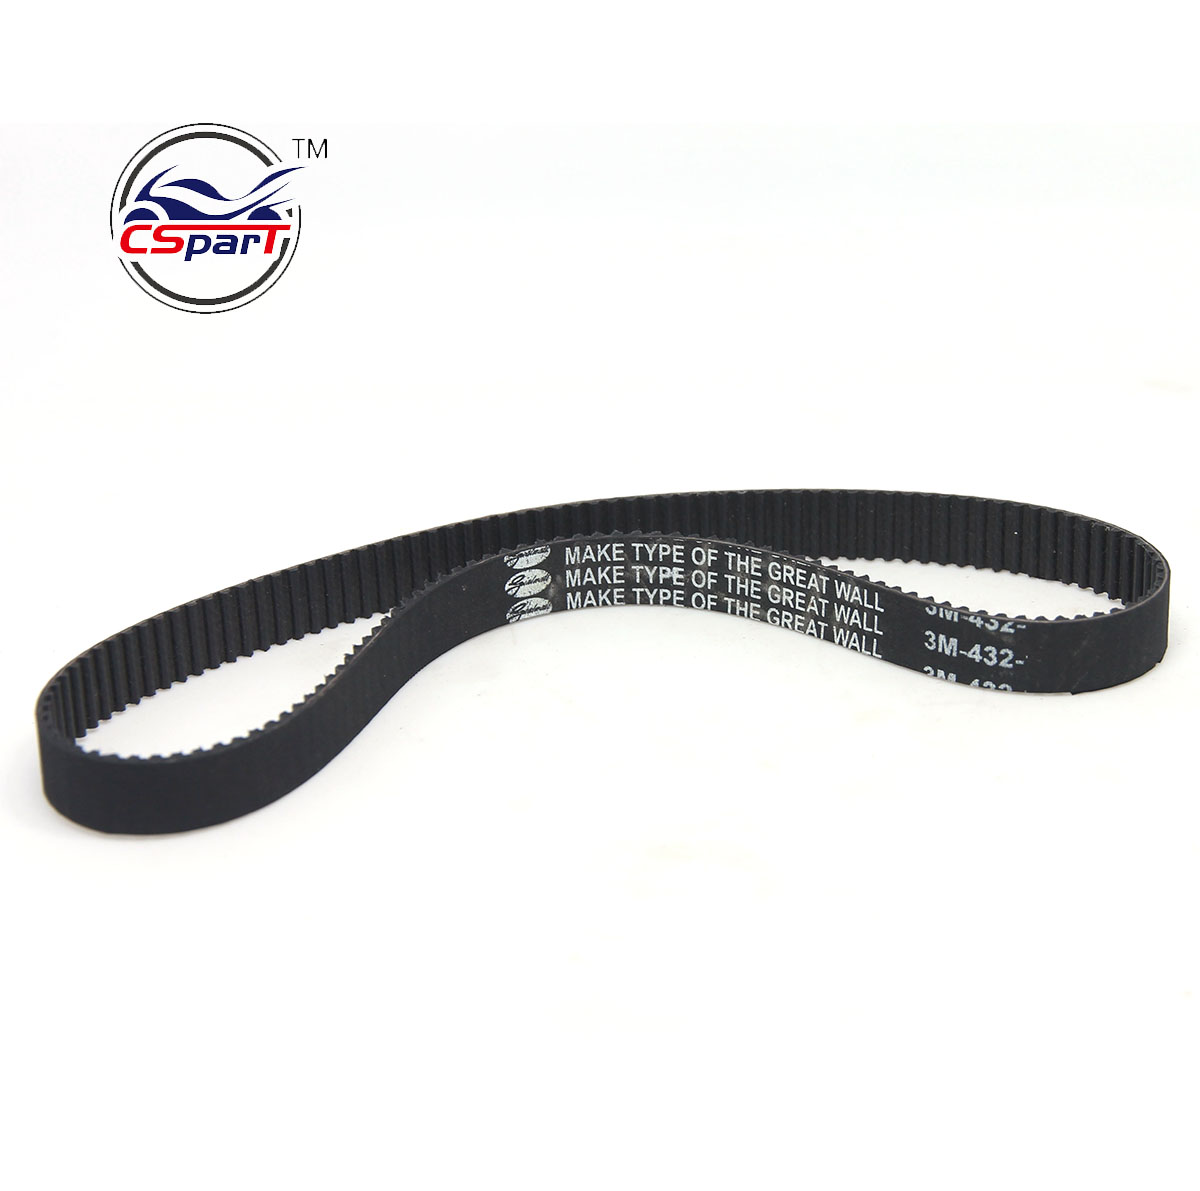 HTD 3M 432 12 144 Tooth Drive Belt Rocket  X-Treme Razor Lzip EVO Electric Scooter Go Ped  Petrol  Parts